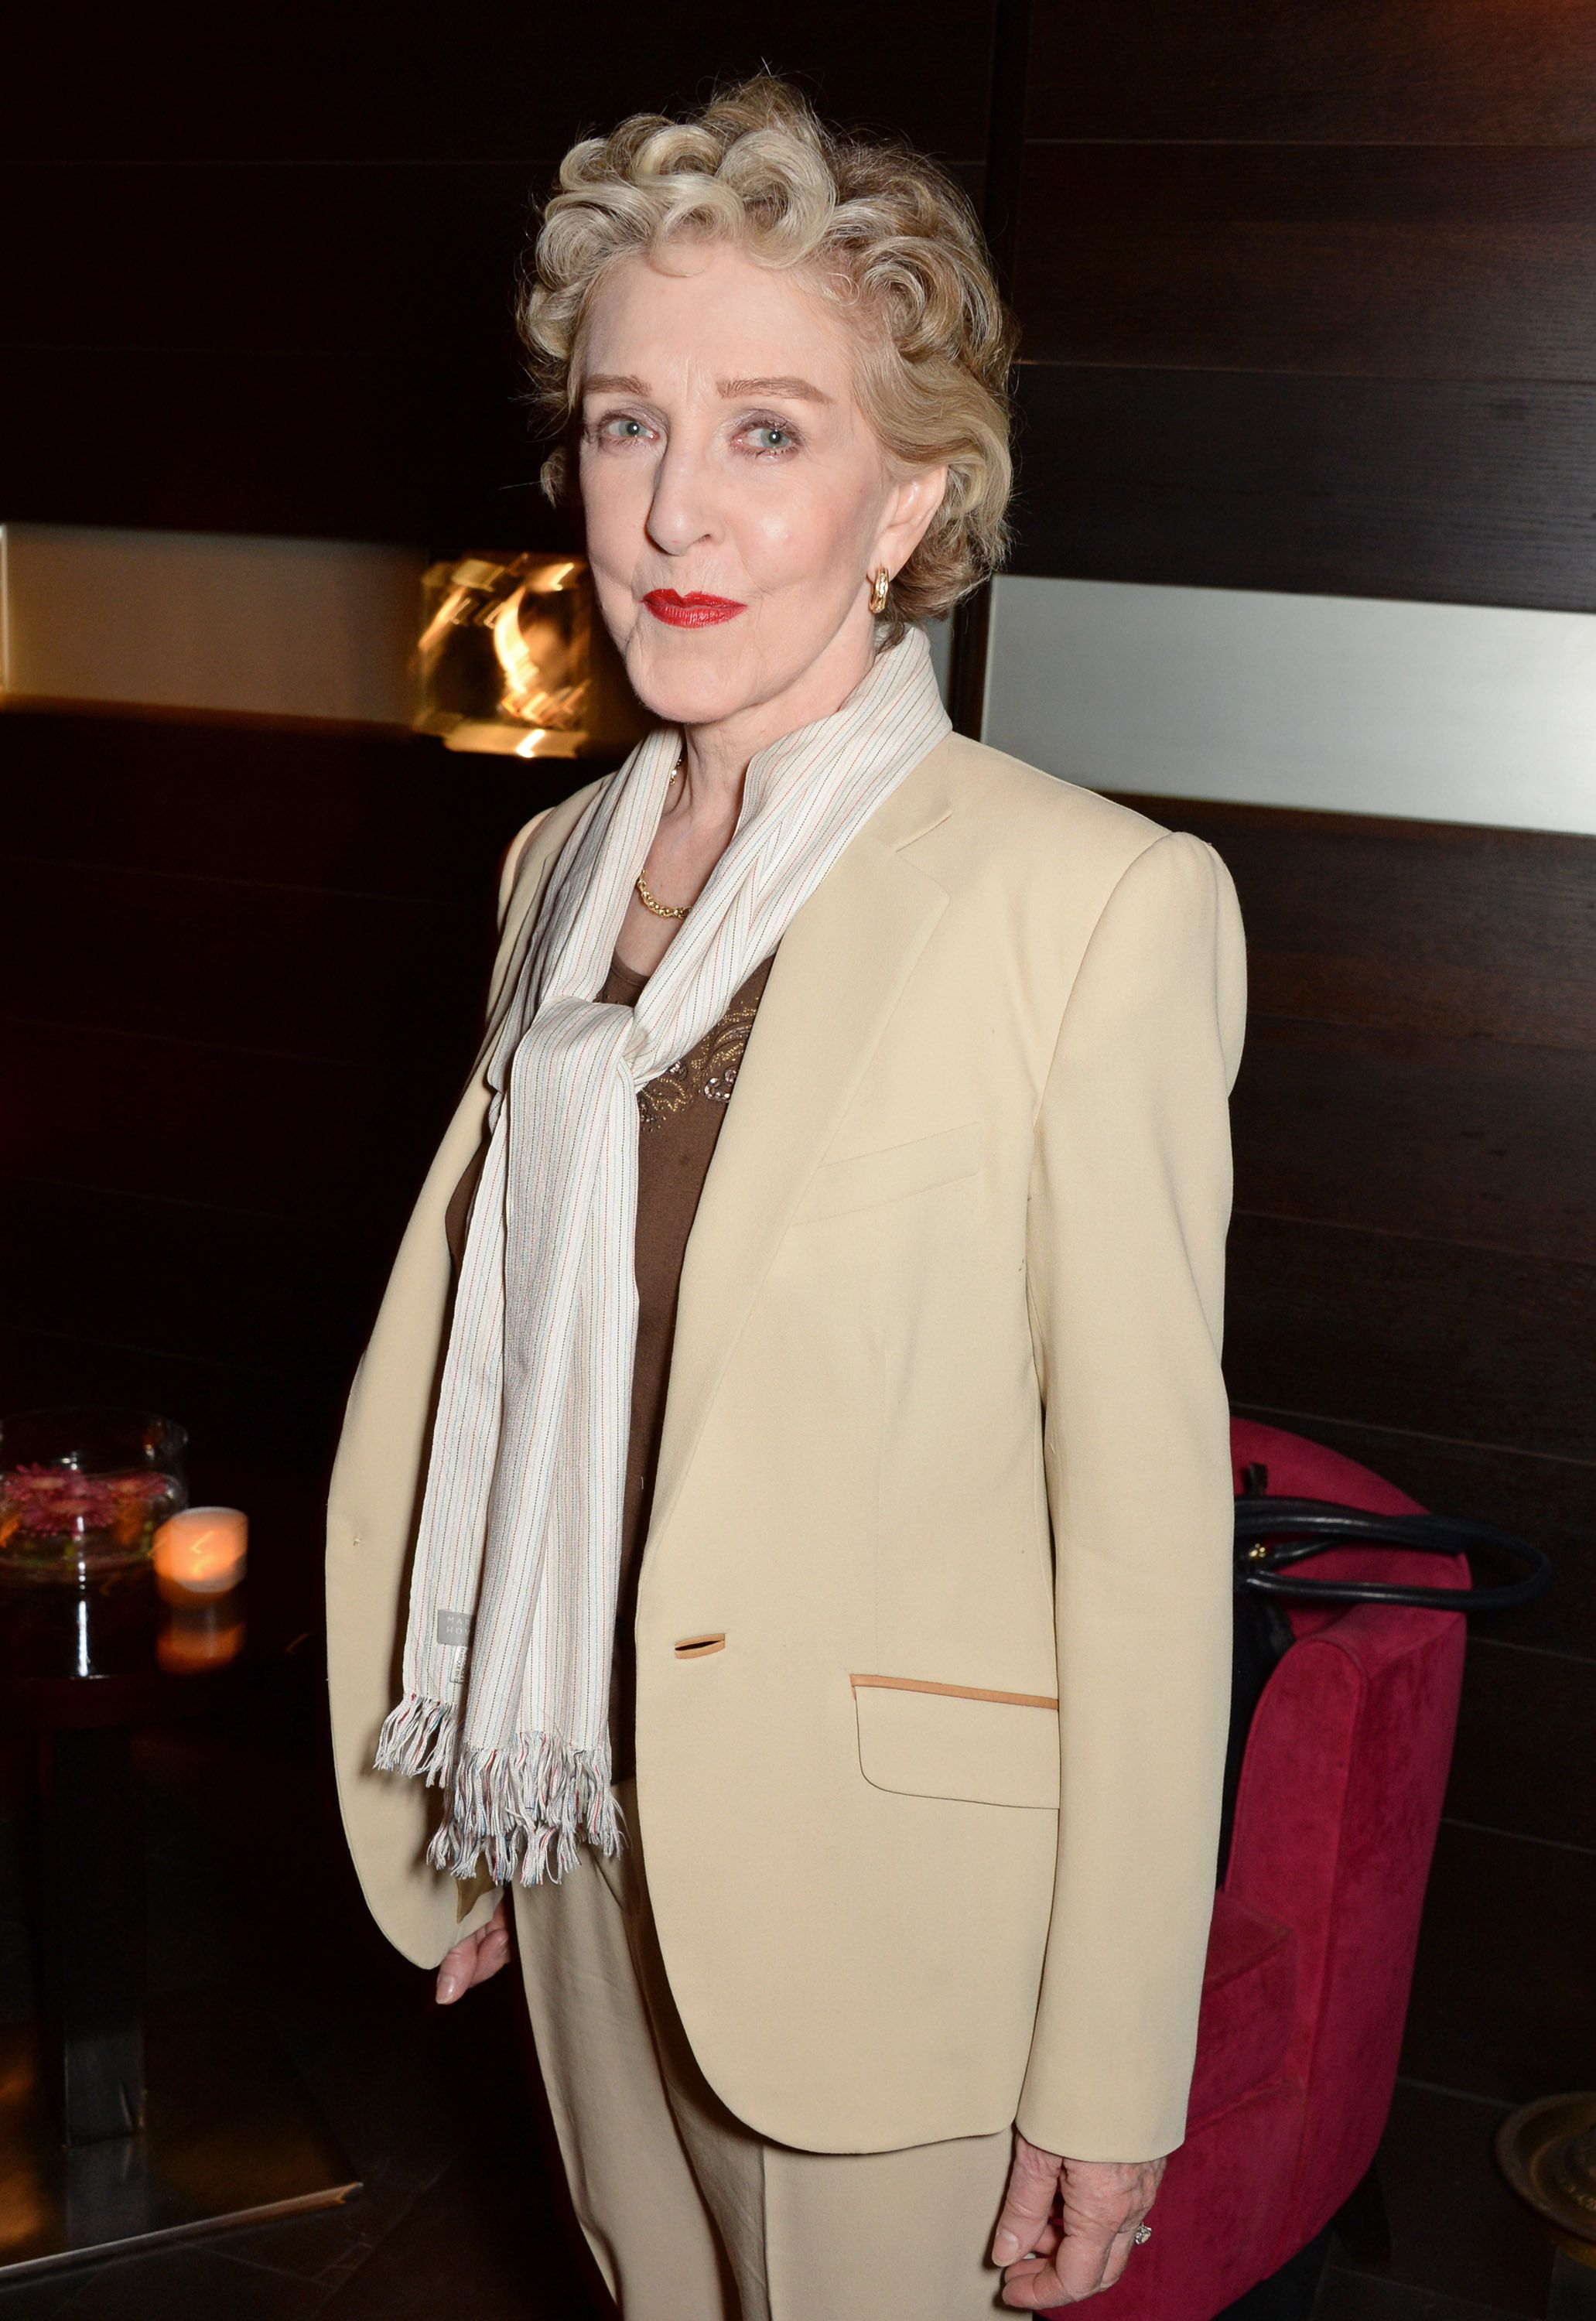 patricia hodge movies and tv shows